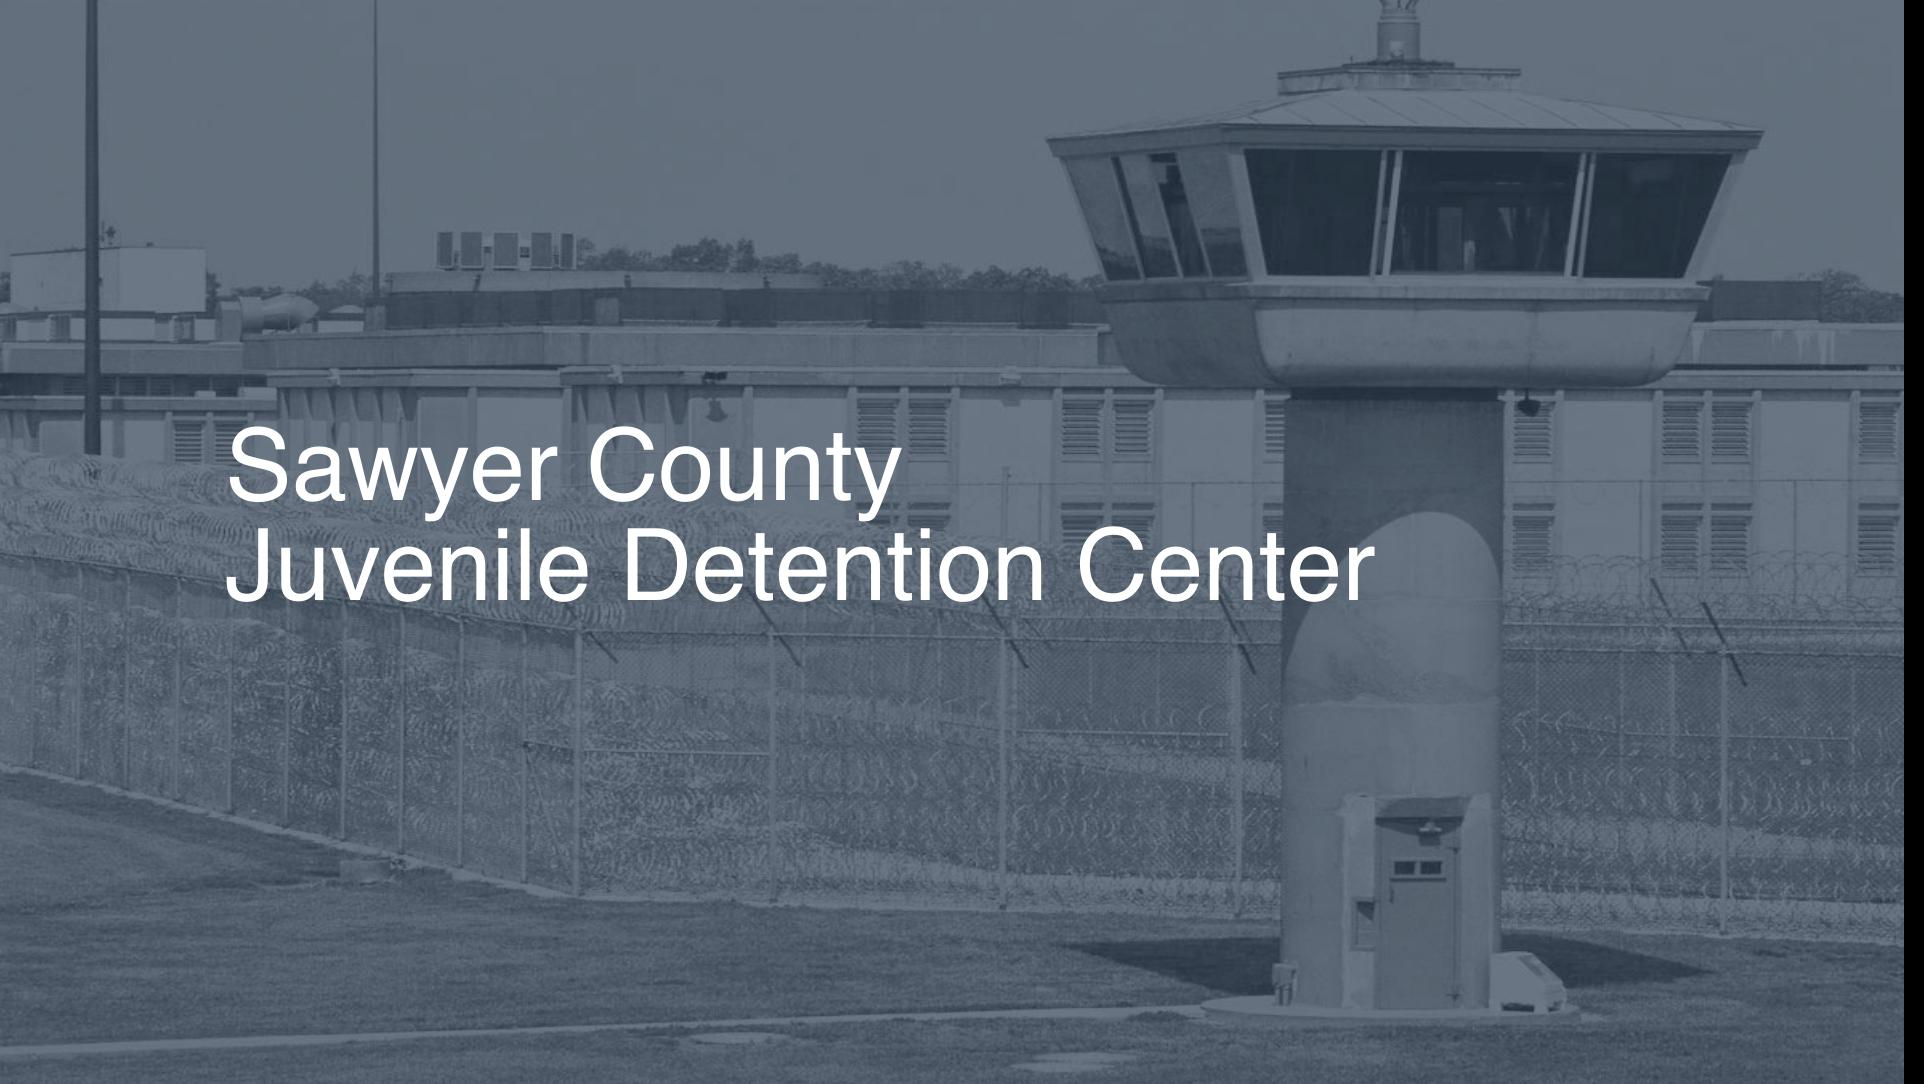 Sawyer County Juvenile Detention Center correctional facility picture